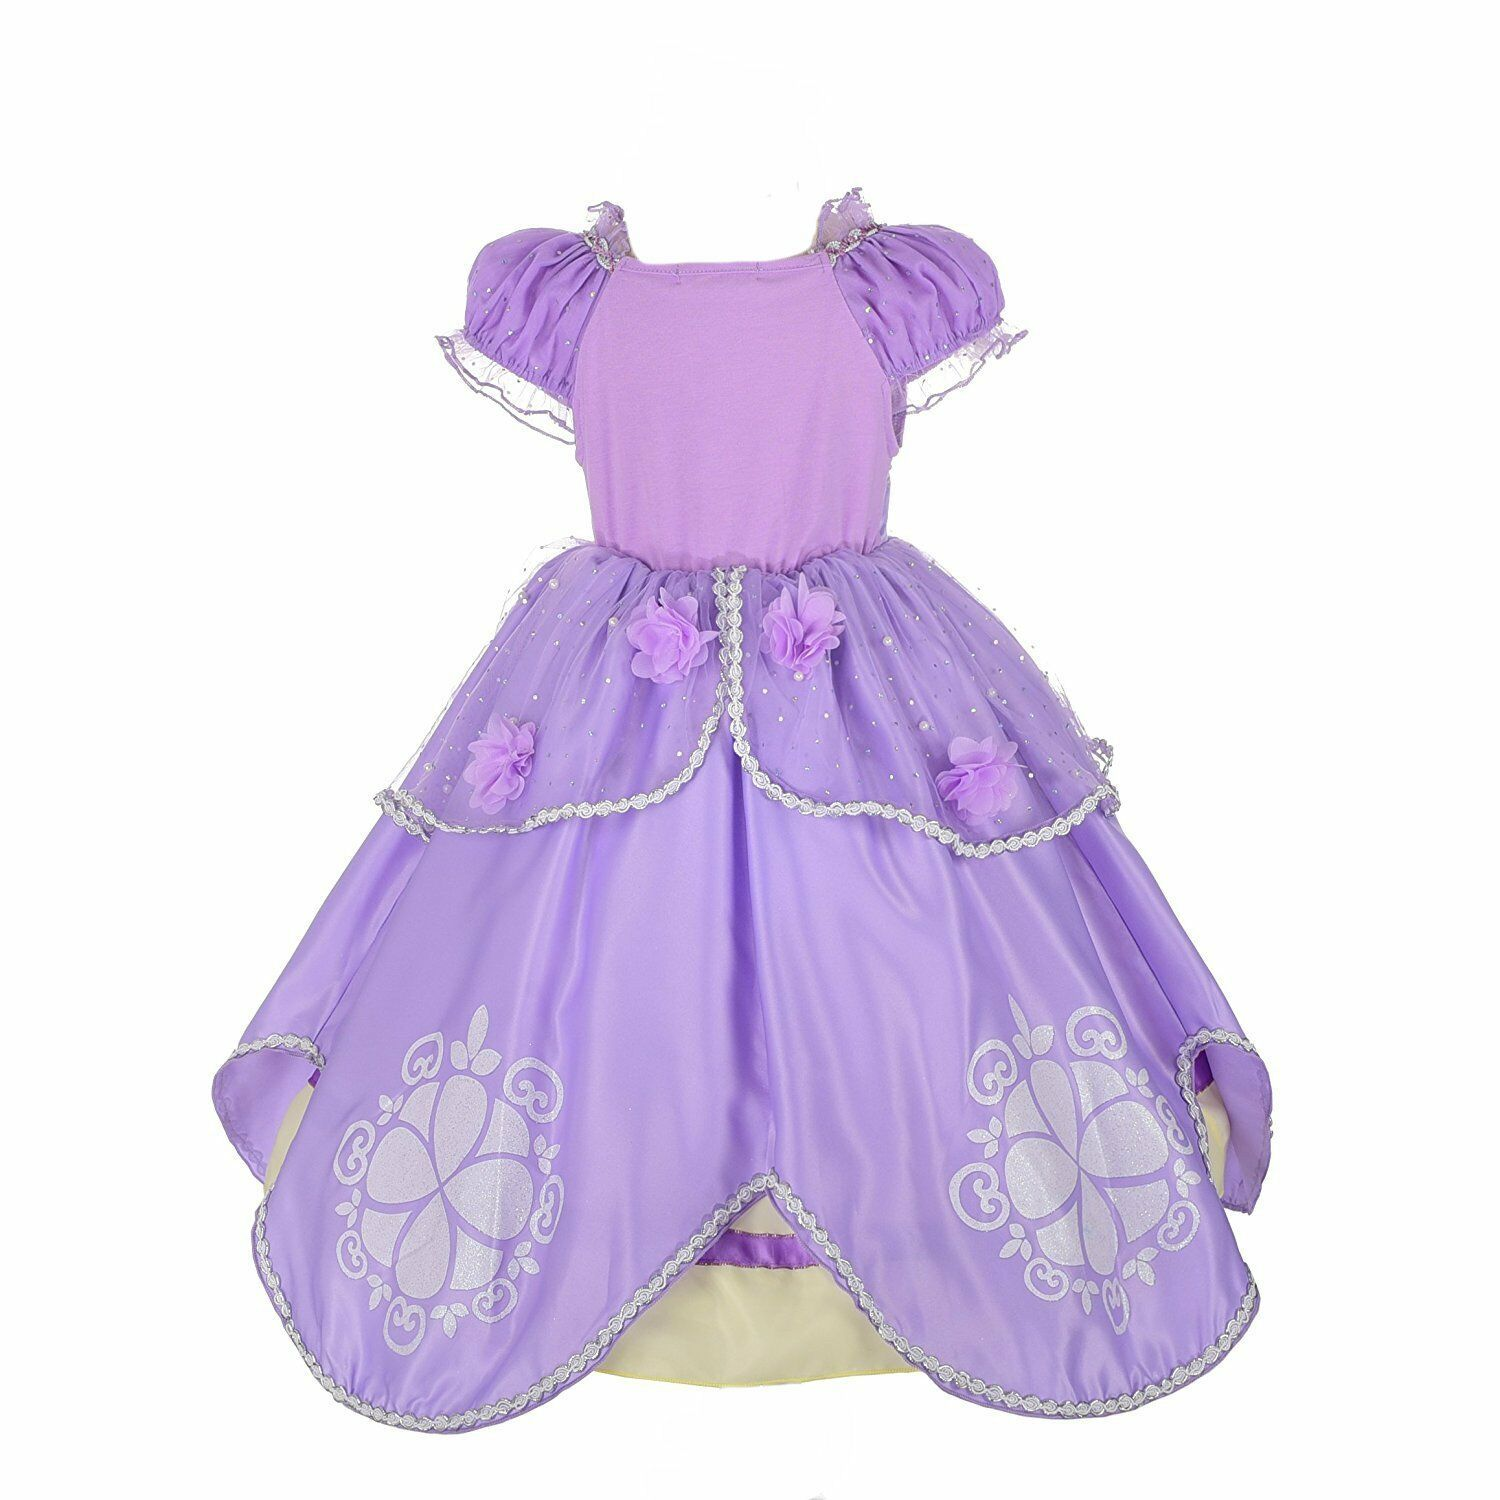 2840153a2 Romy's Collection Girls Sofia Inspired Princess Dress-Up Costume Set